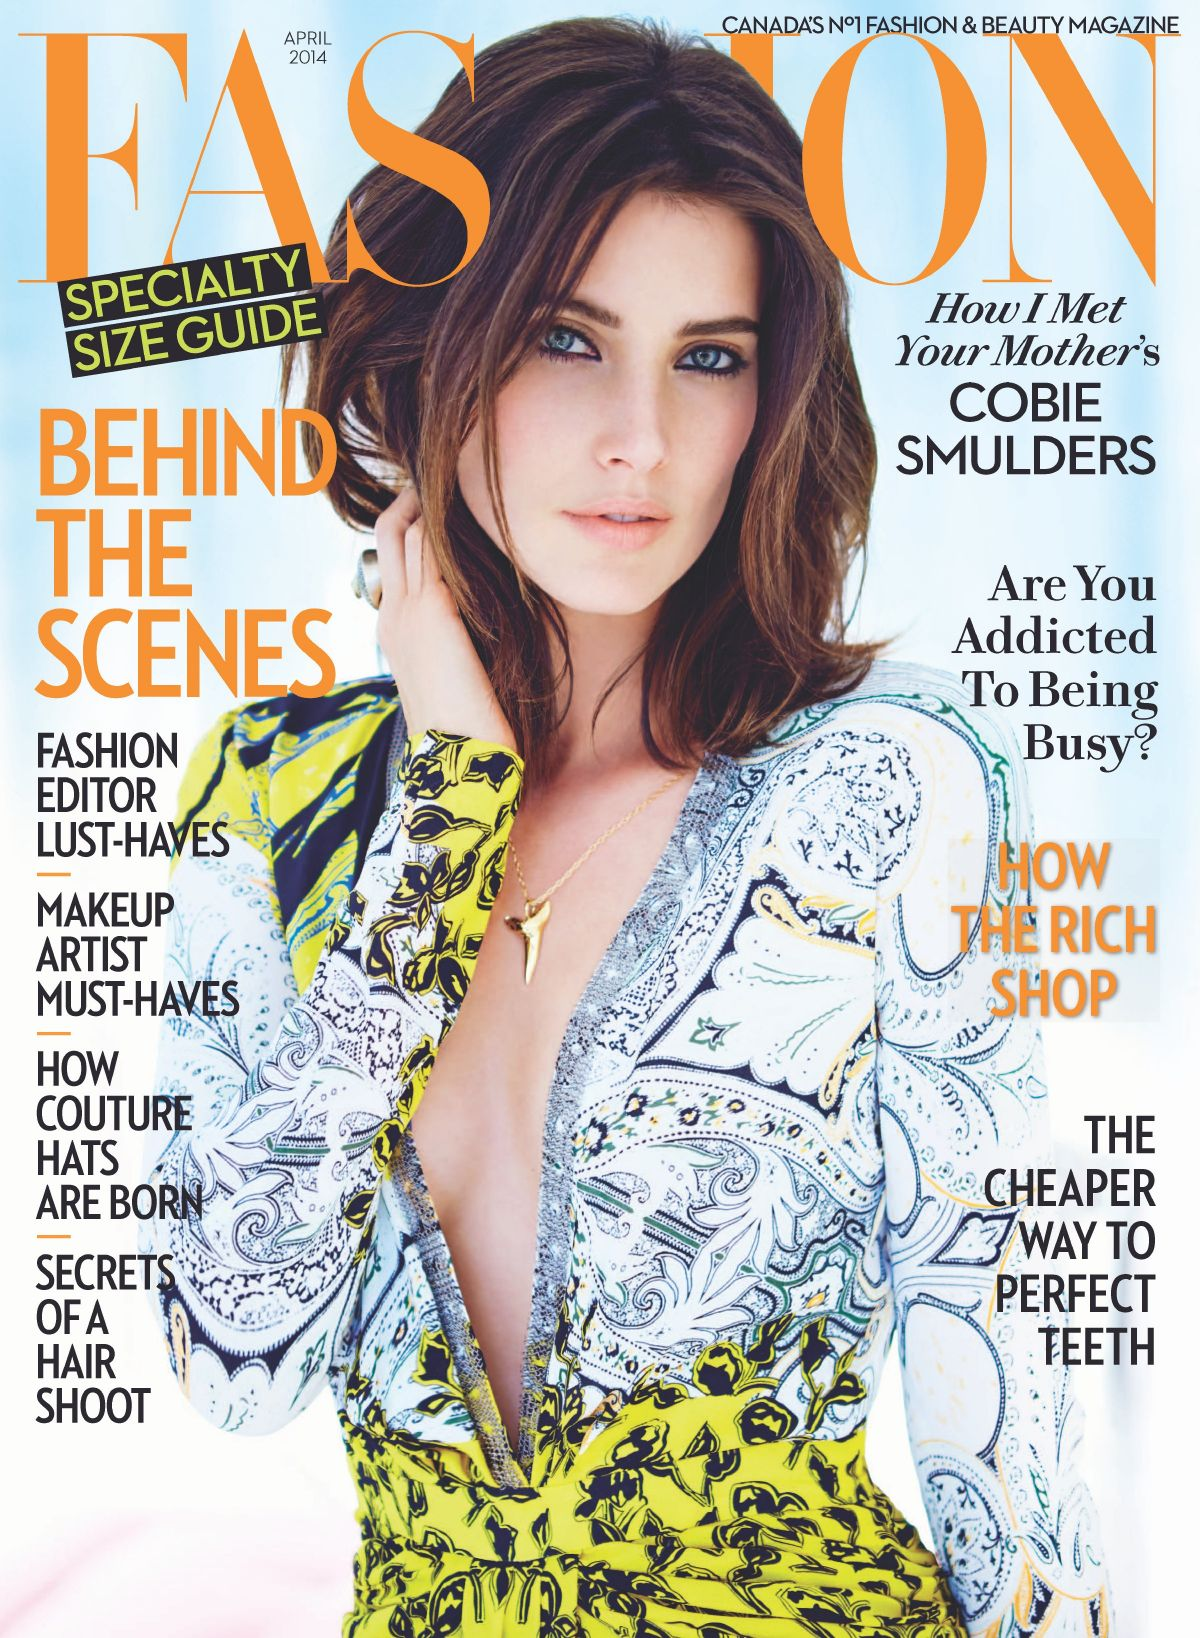 COBIE SMULDERS on the Cover of Fashion Magazine, April 2014 Issue